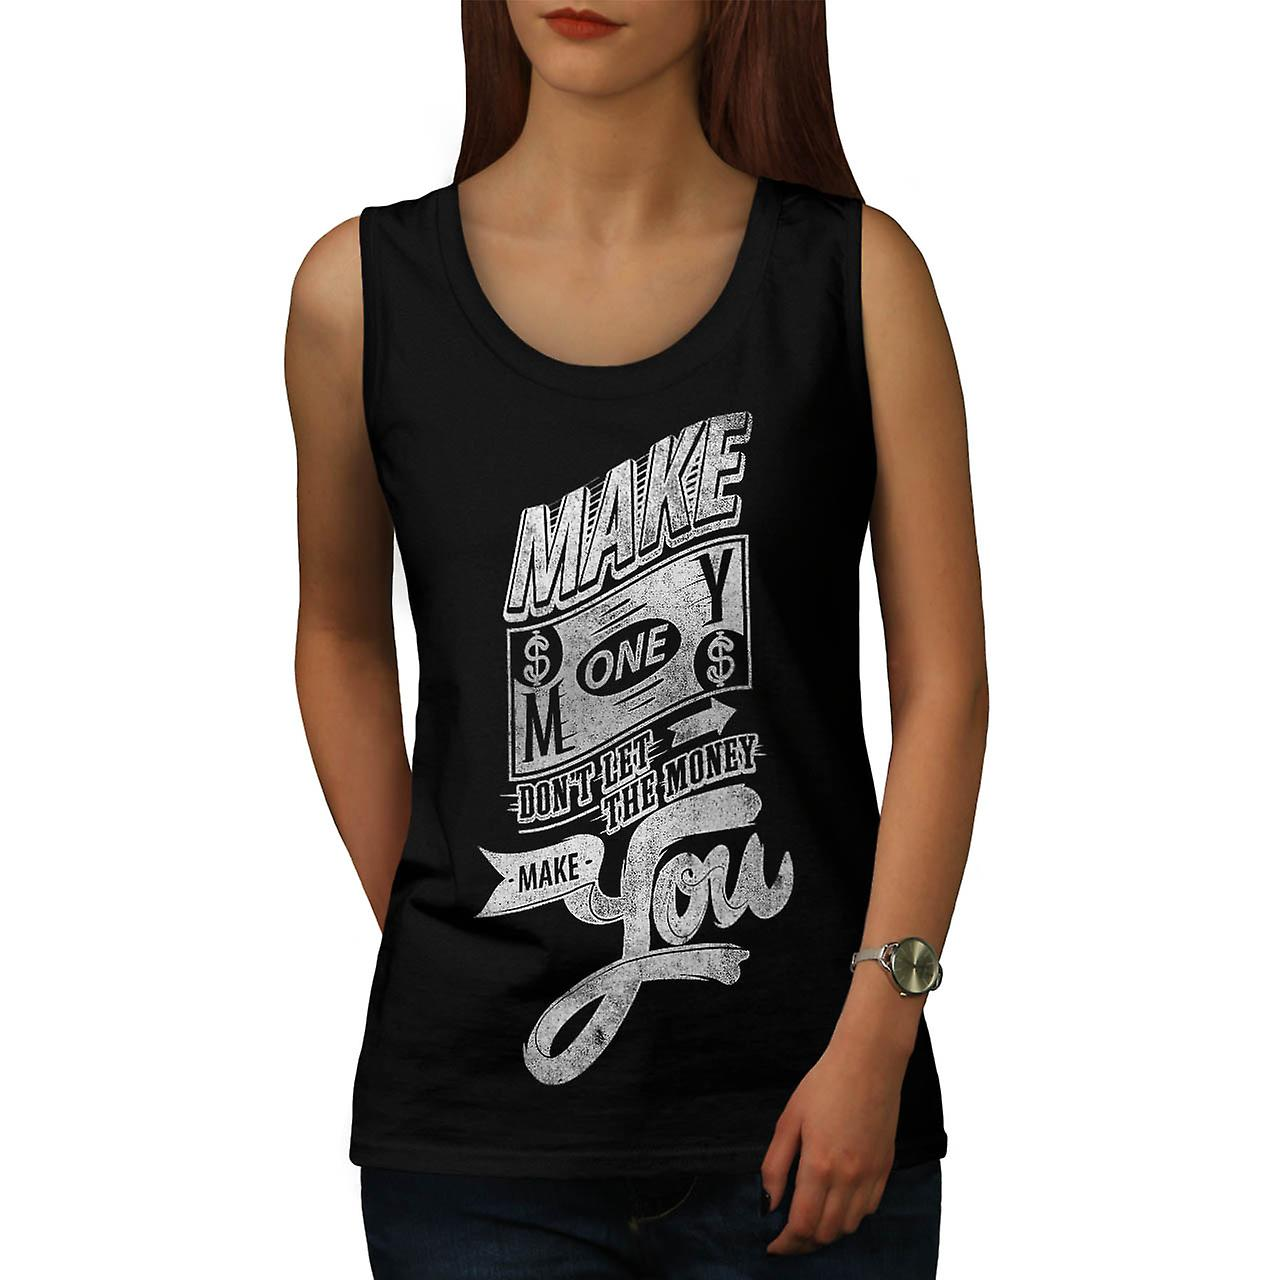 Make Money Inspire Dollars Pound Women Black Tank Top | Wellcoda